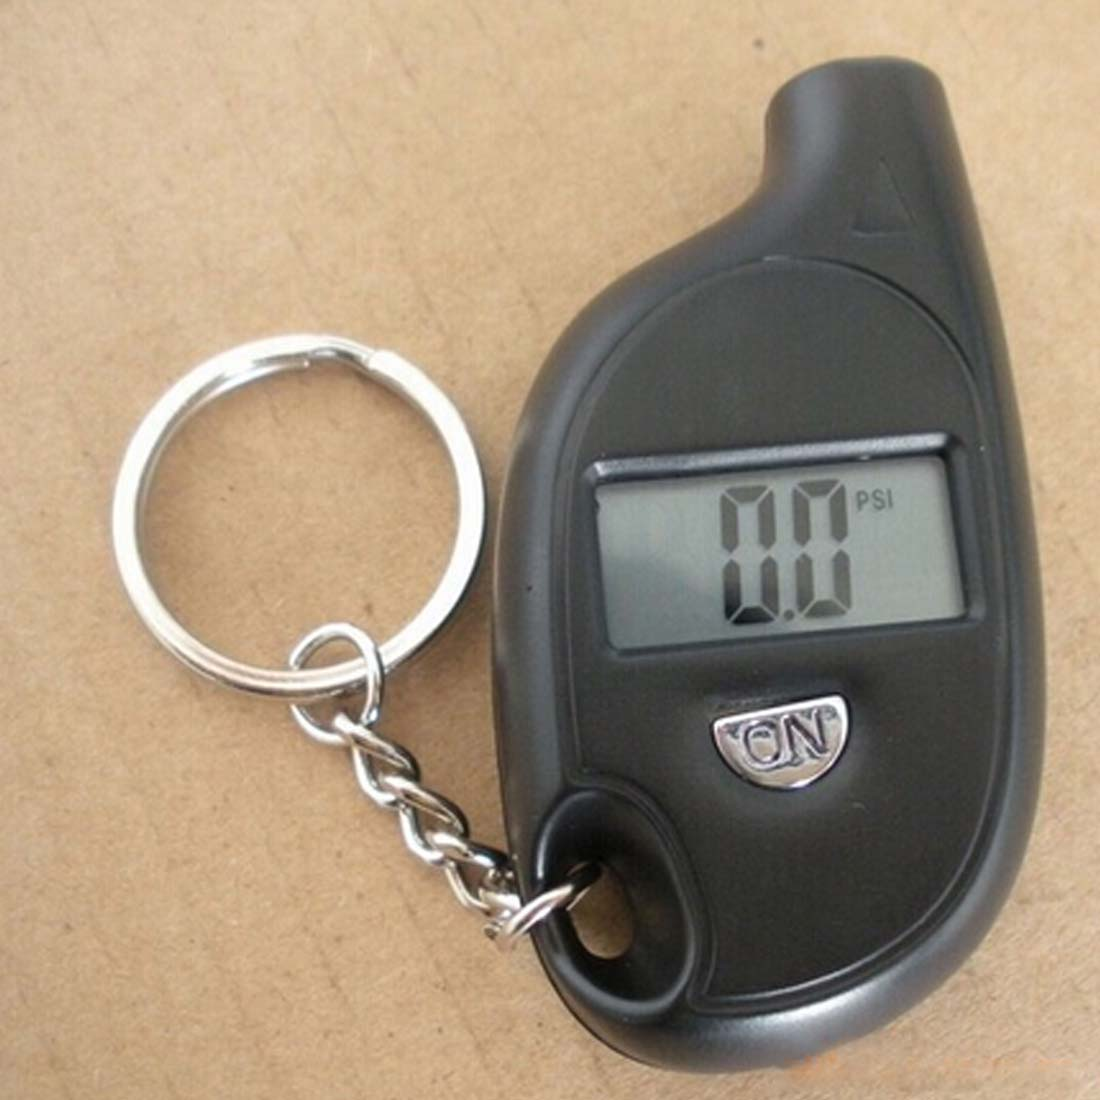 Portable Keychain LCD Digital Auto Wheel Tire Air Pressure Gauge Meter Test Tyre Tester For Vehicle Motorcycle Car